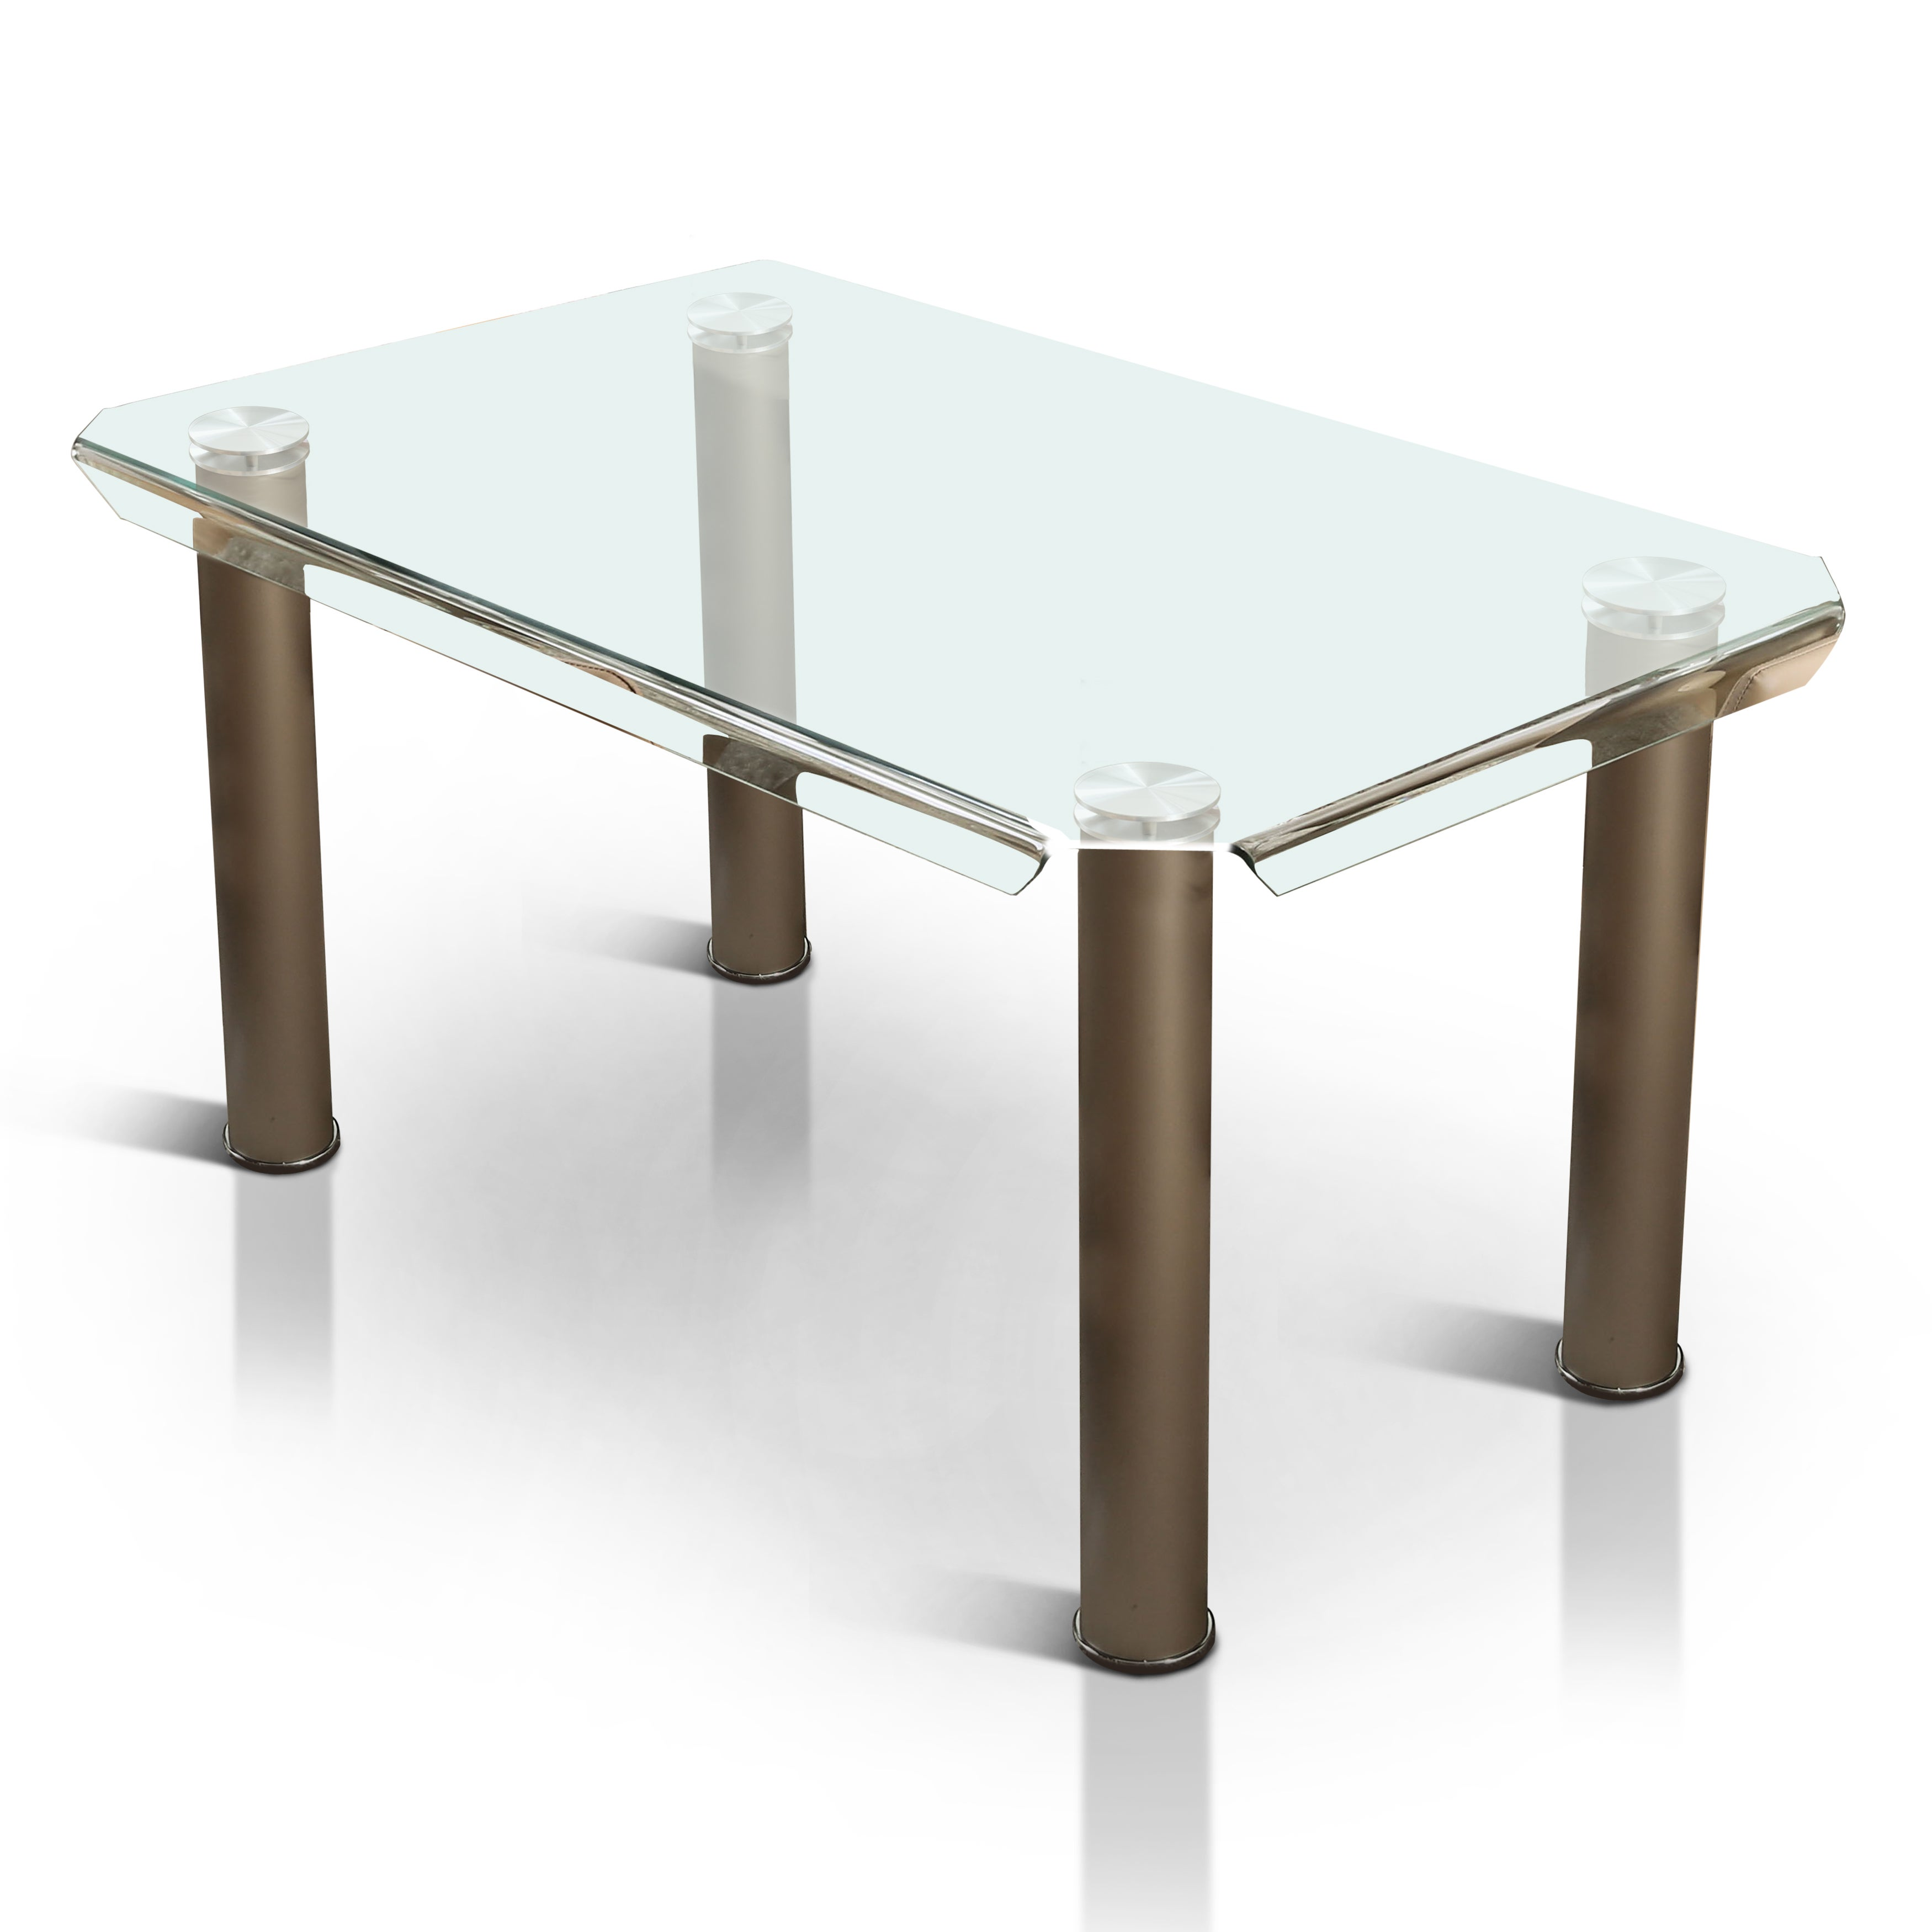 Furniture of america contemporary tempered glass 59 inch dining table